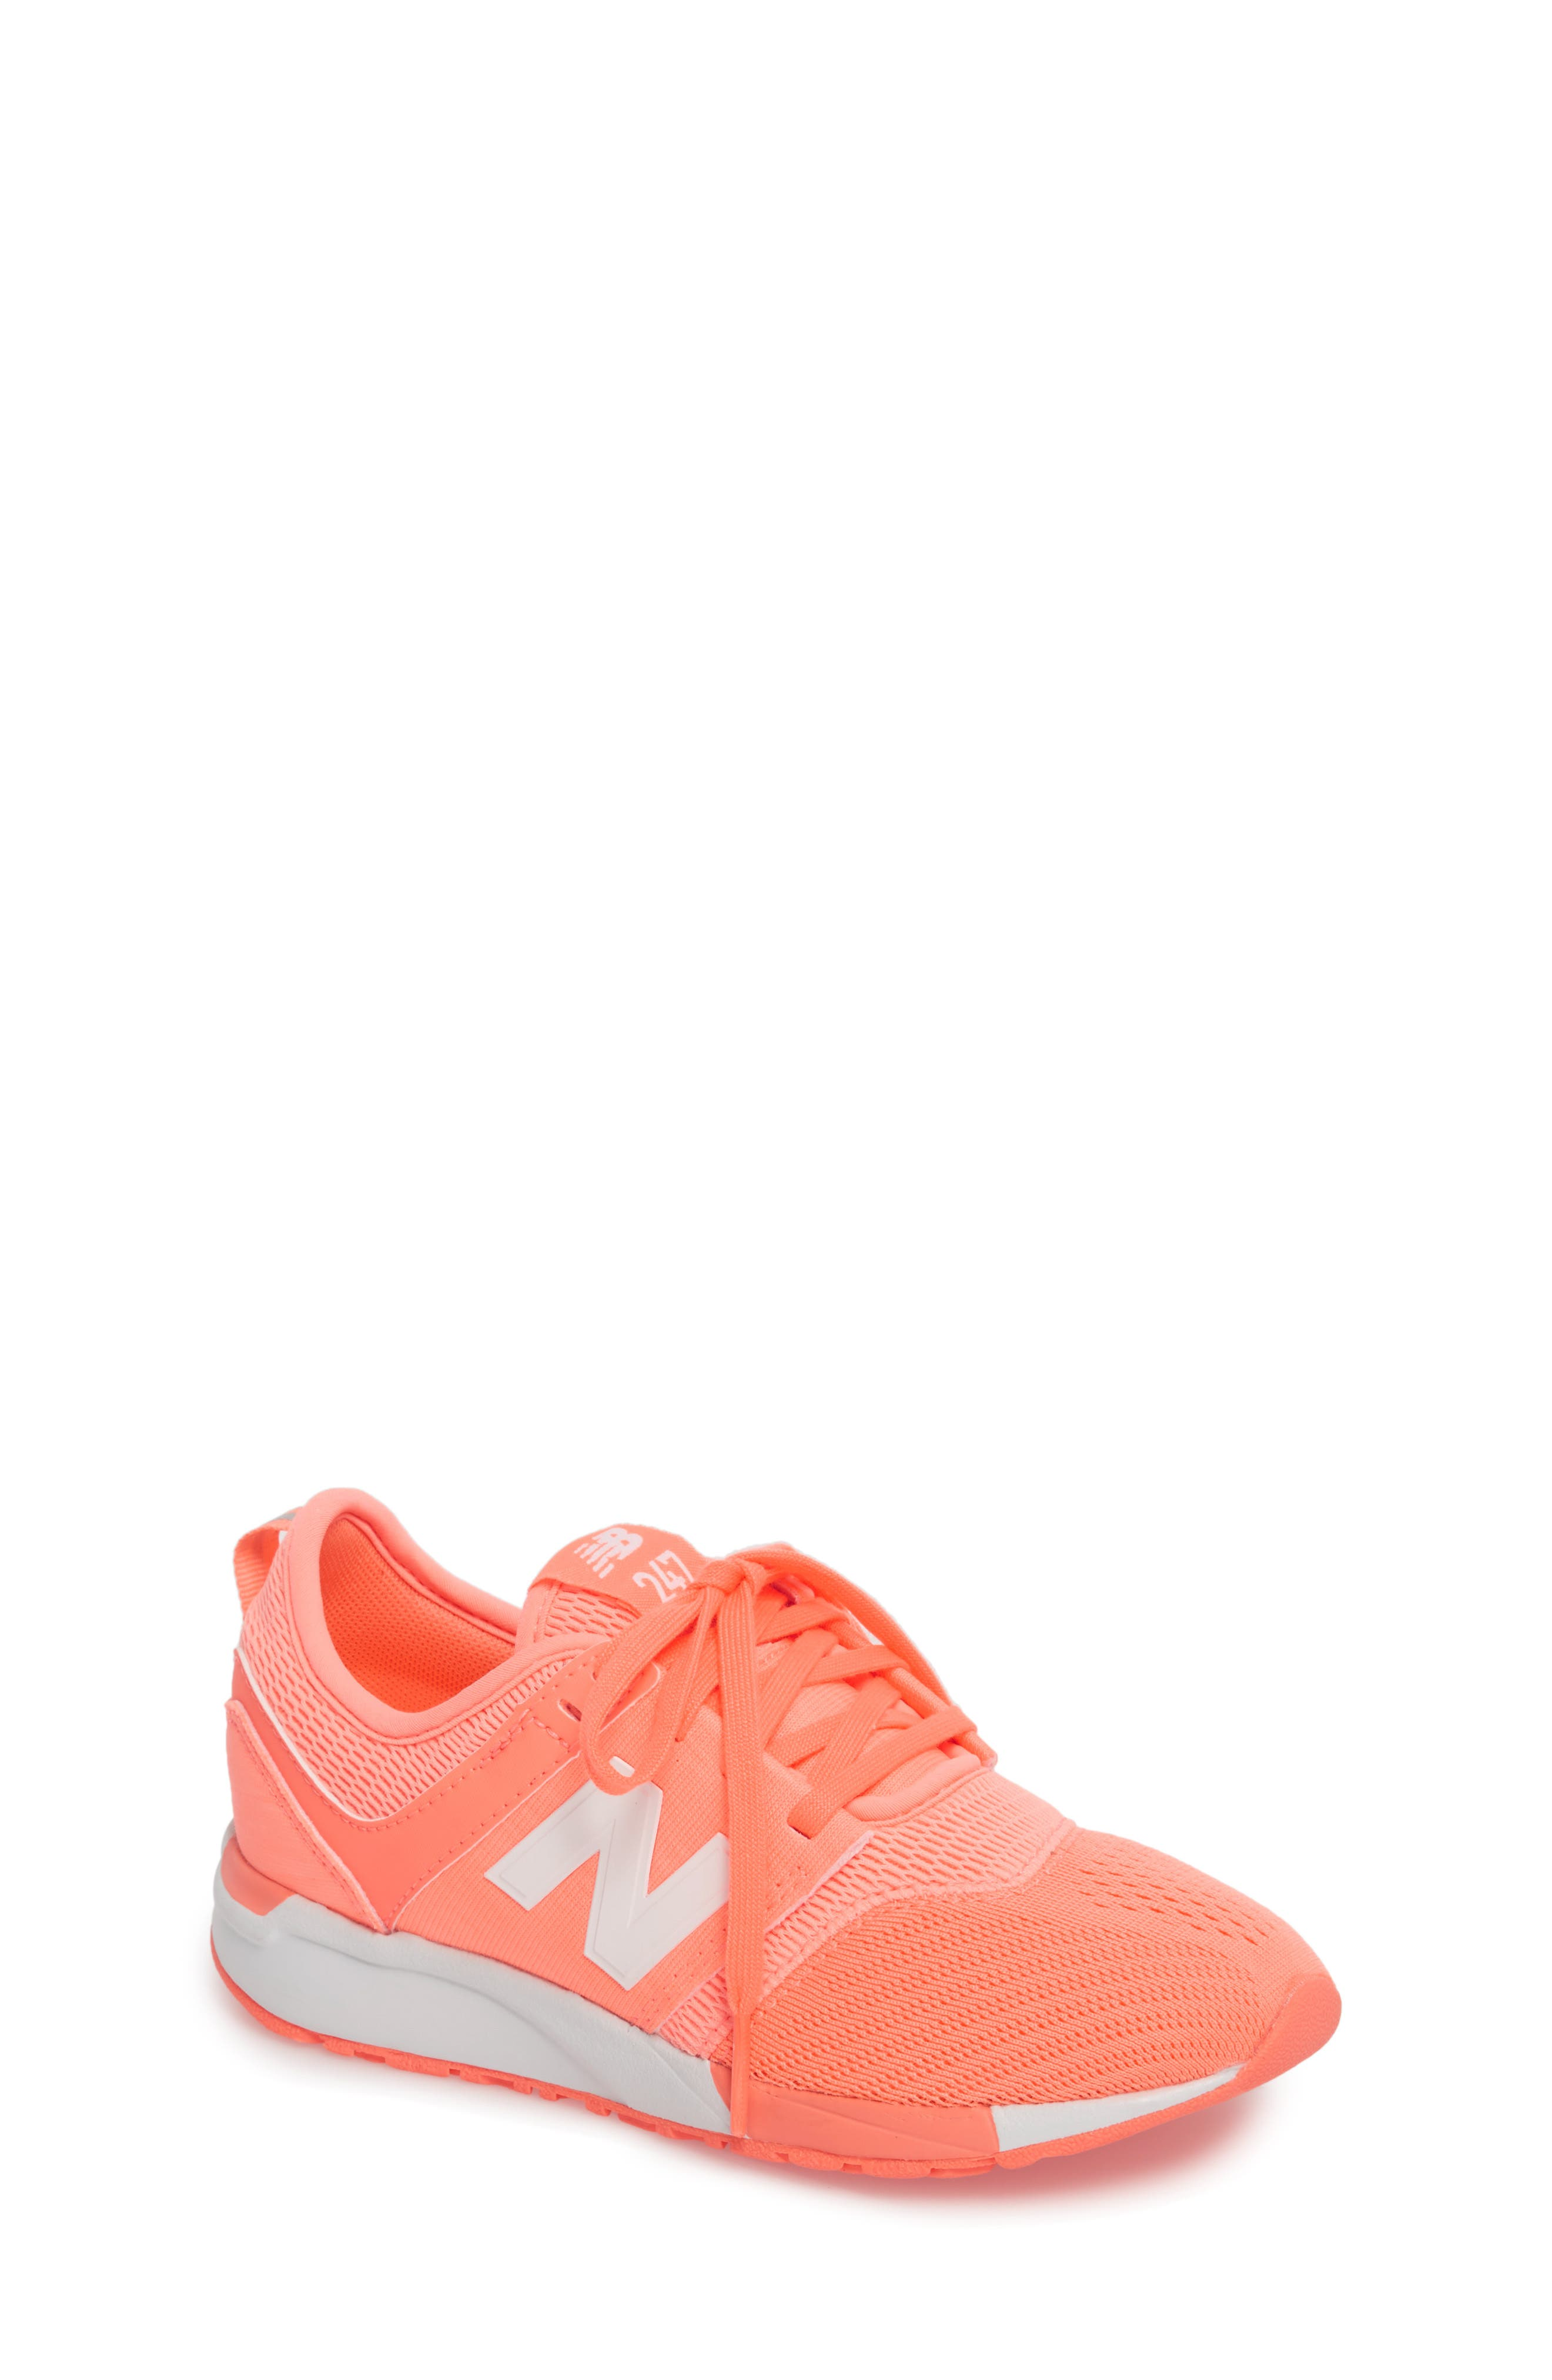 247 Sport Sneaker,                         Main,                         color, Pink/ White